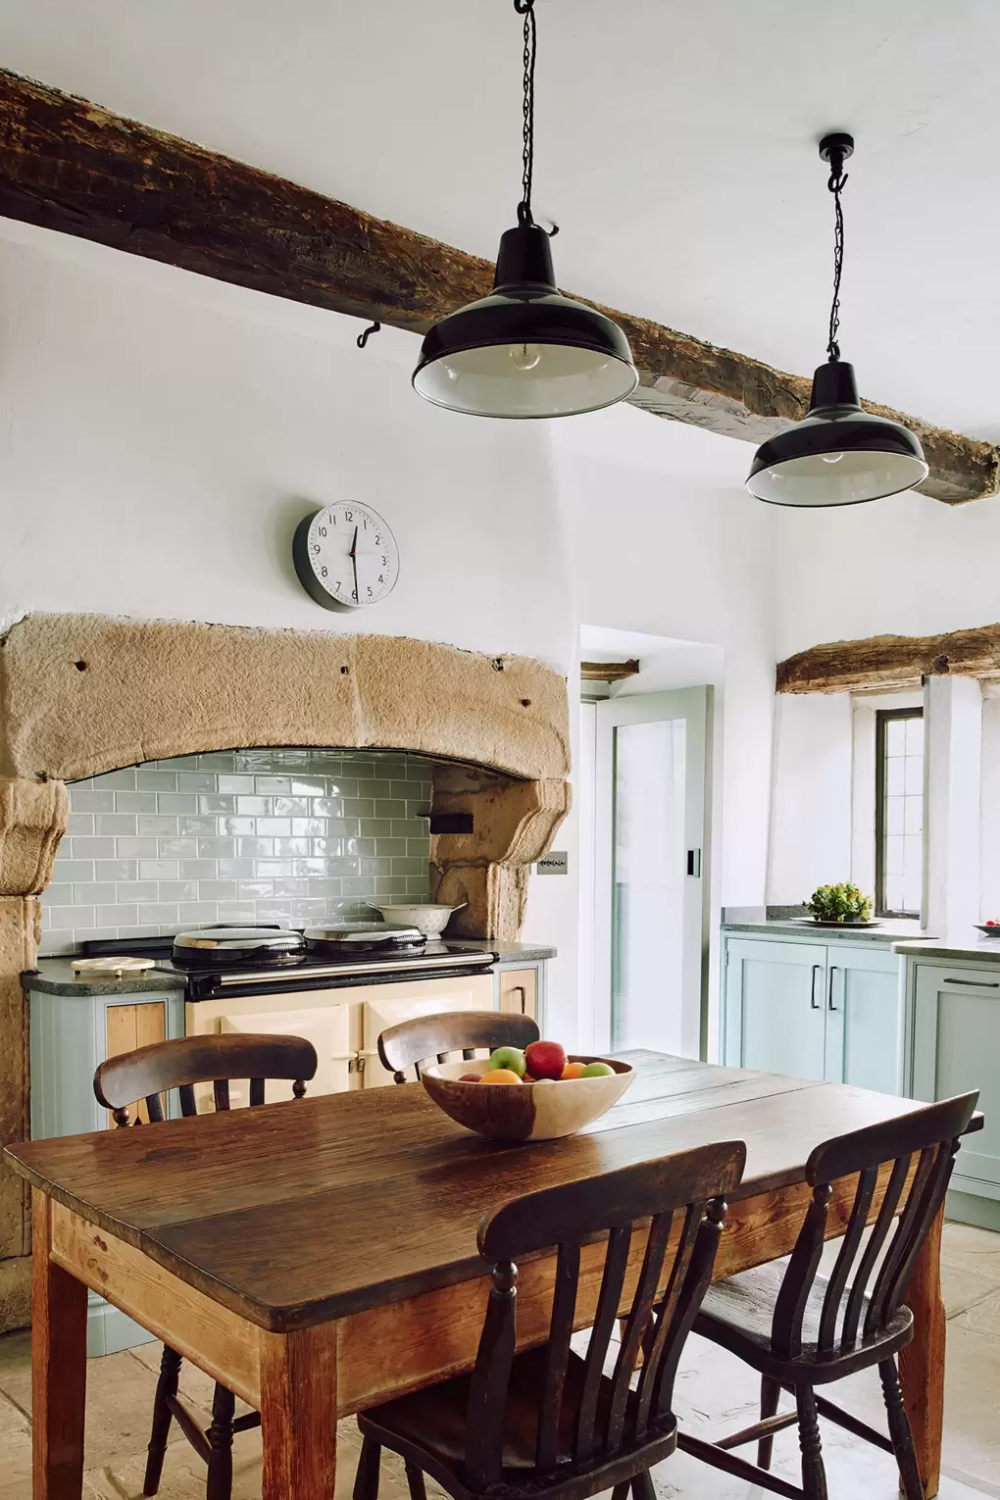 Country kitchen ideas and designs in 2020 Wooden kitchen